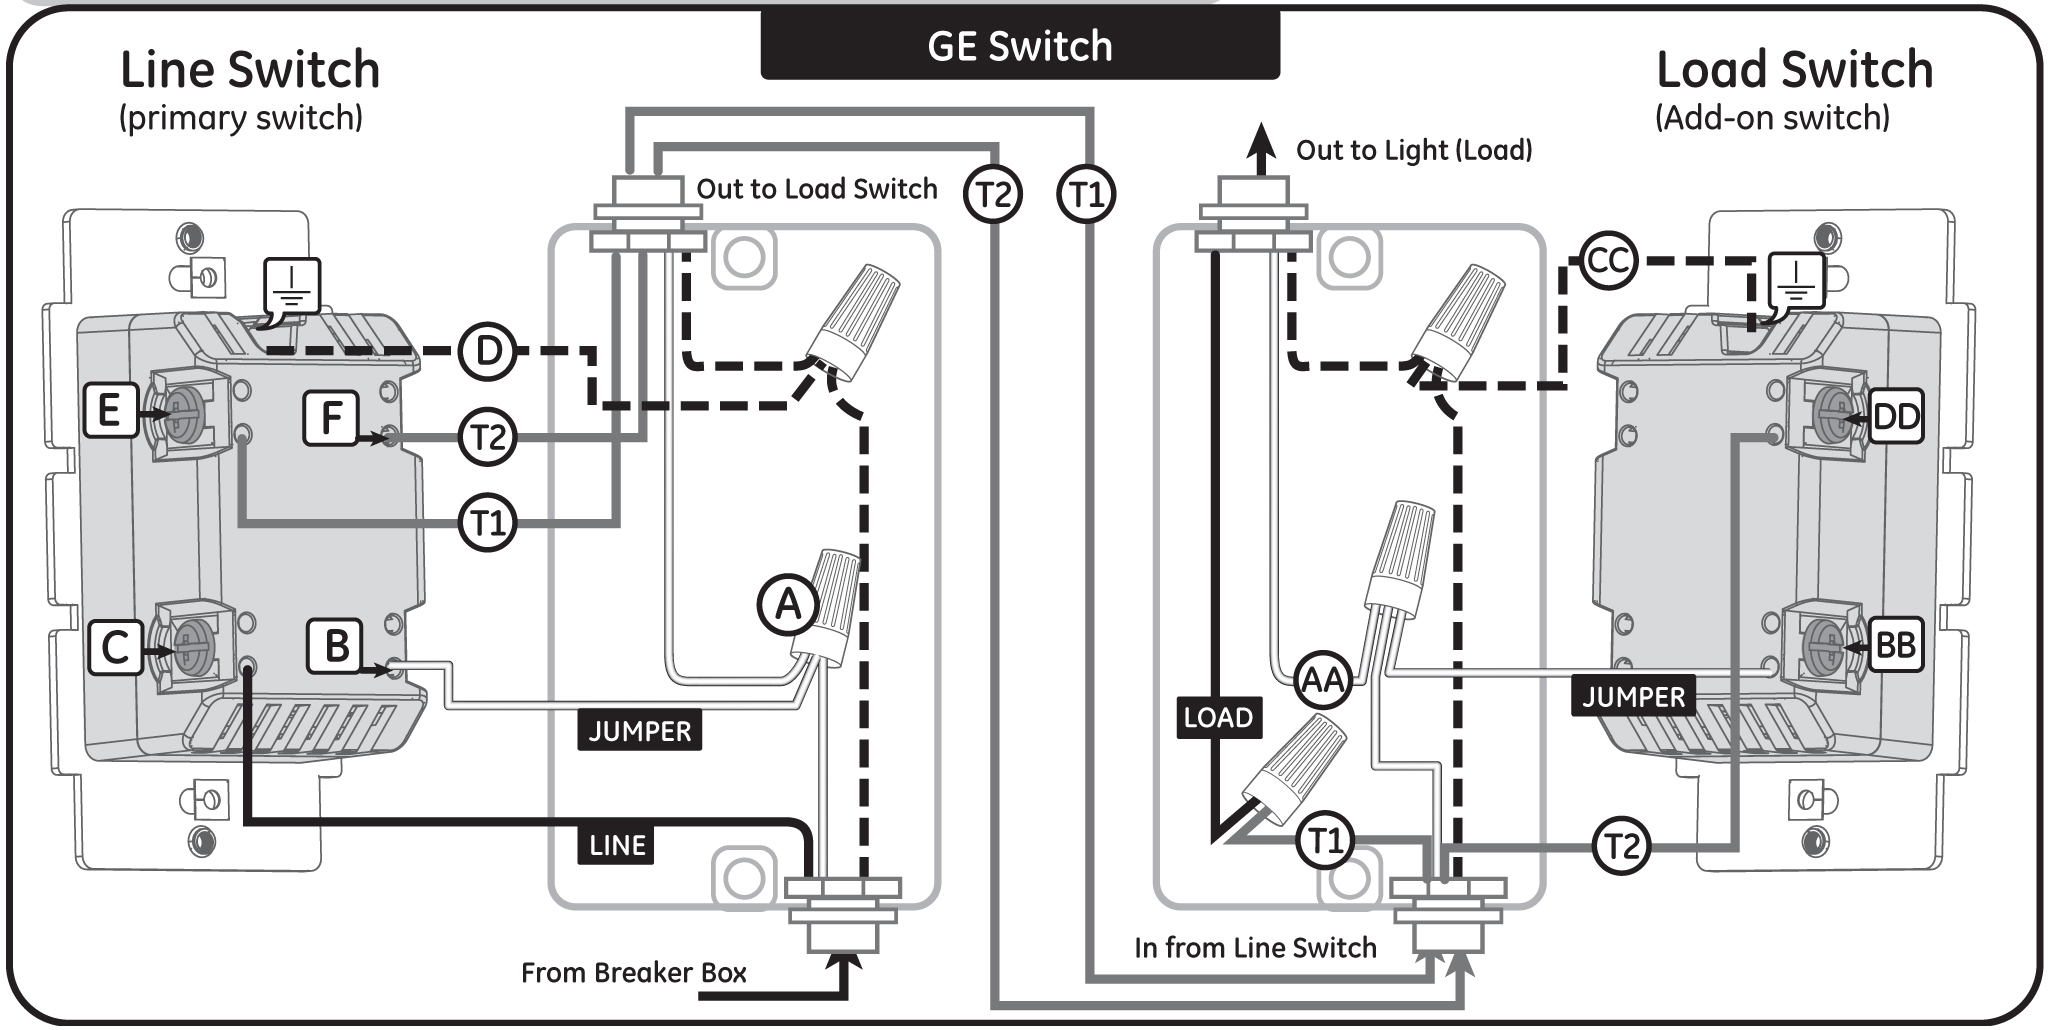 Leviton 4 Way Switch Wiring Diagram | Free Wiring Diagram